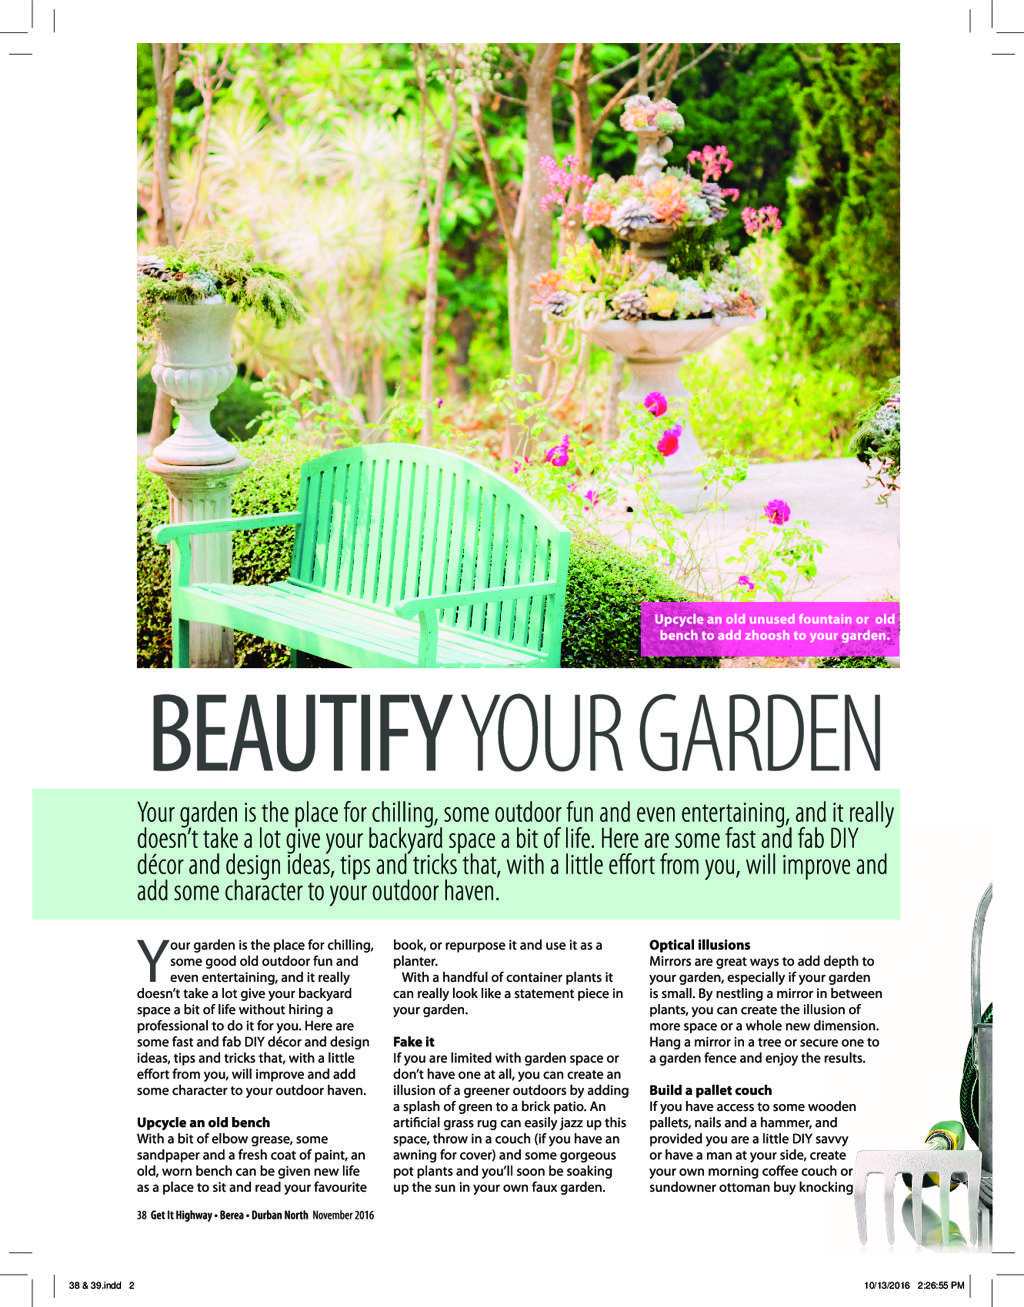 durban-get-it-magazine-november-2016-epapers-page-40